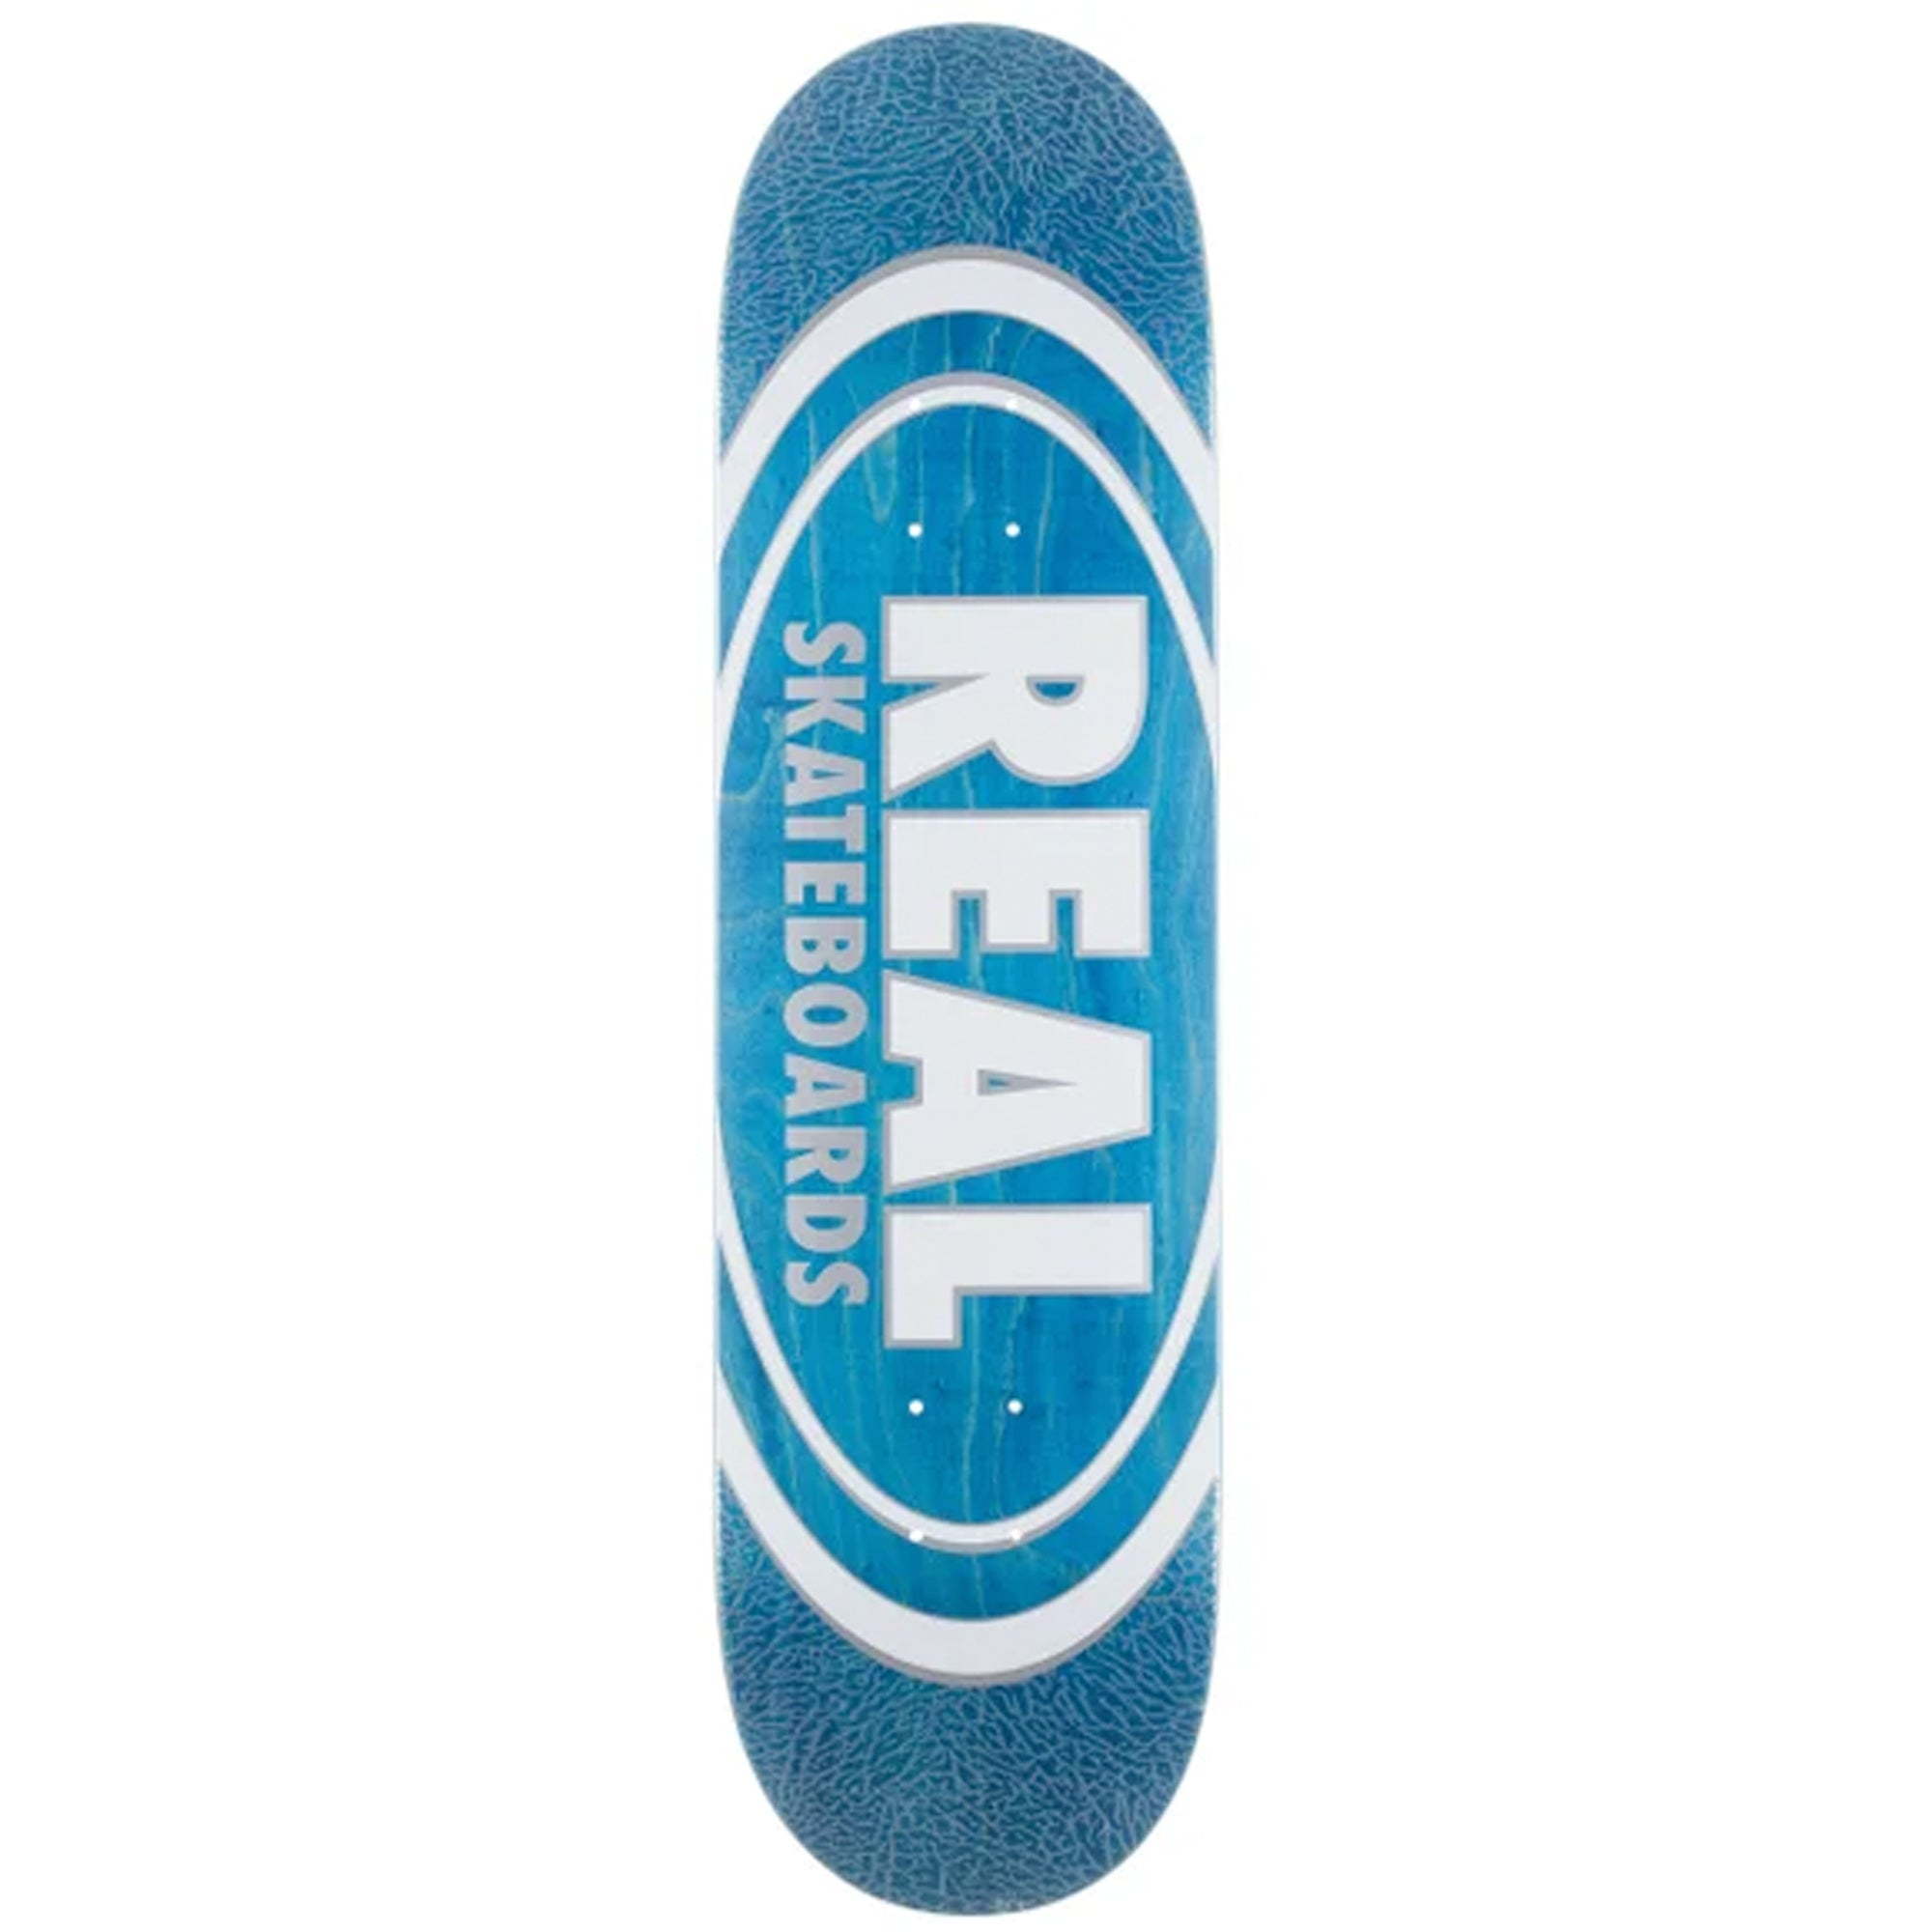 Real Oval Pearl Patterns Skateboard Deck 8.75""